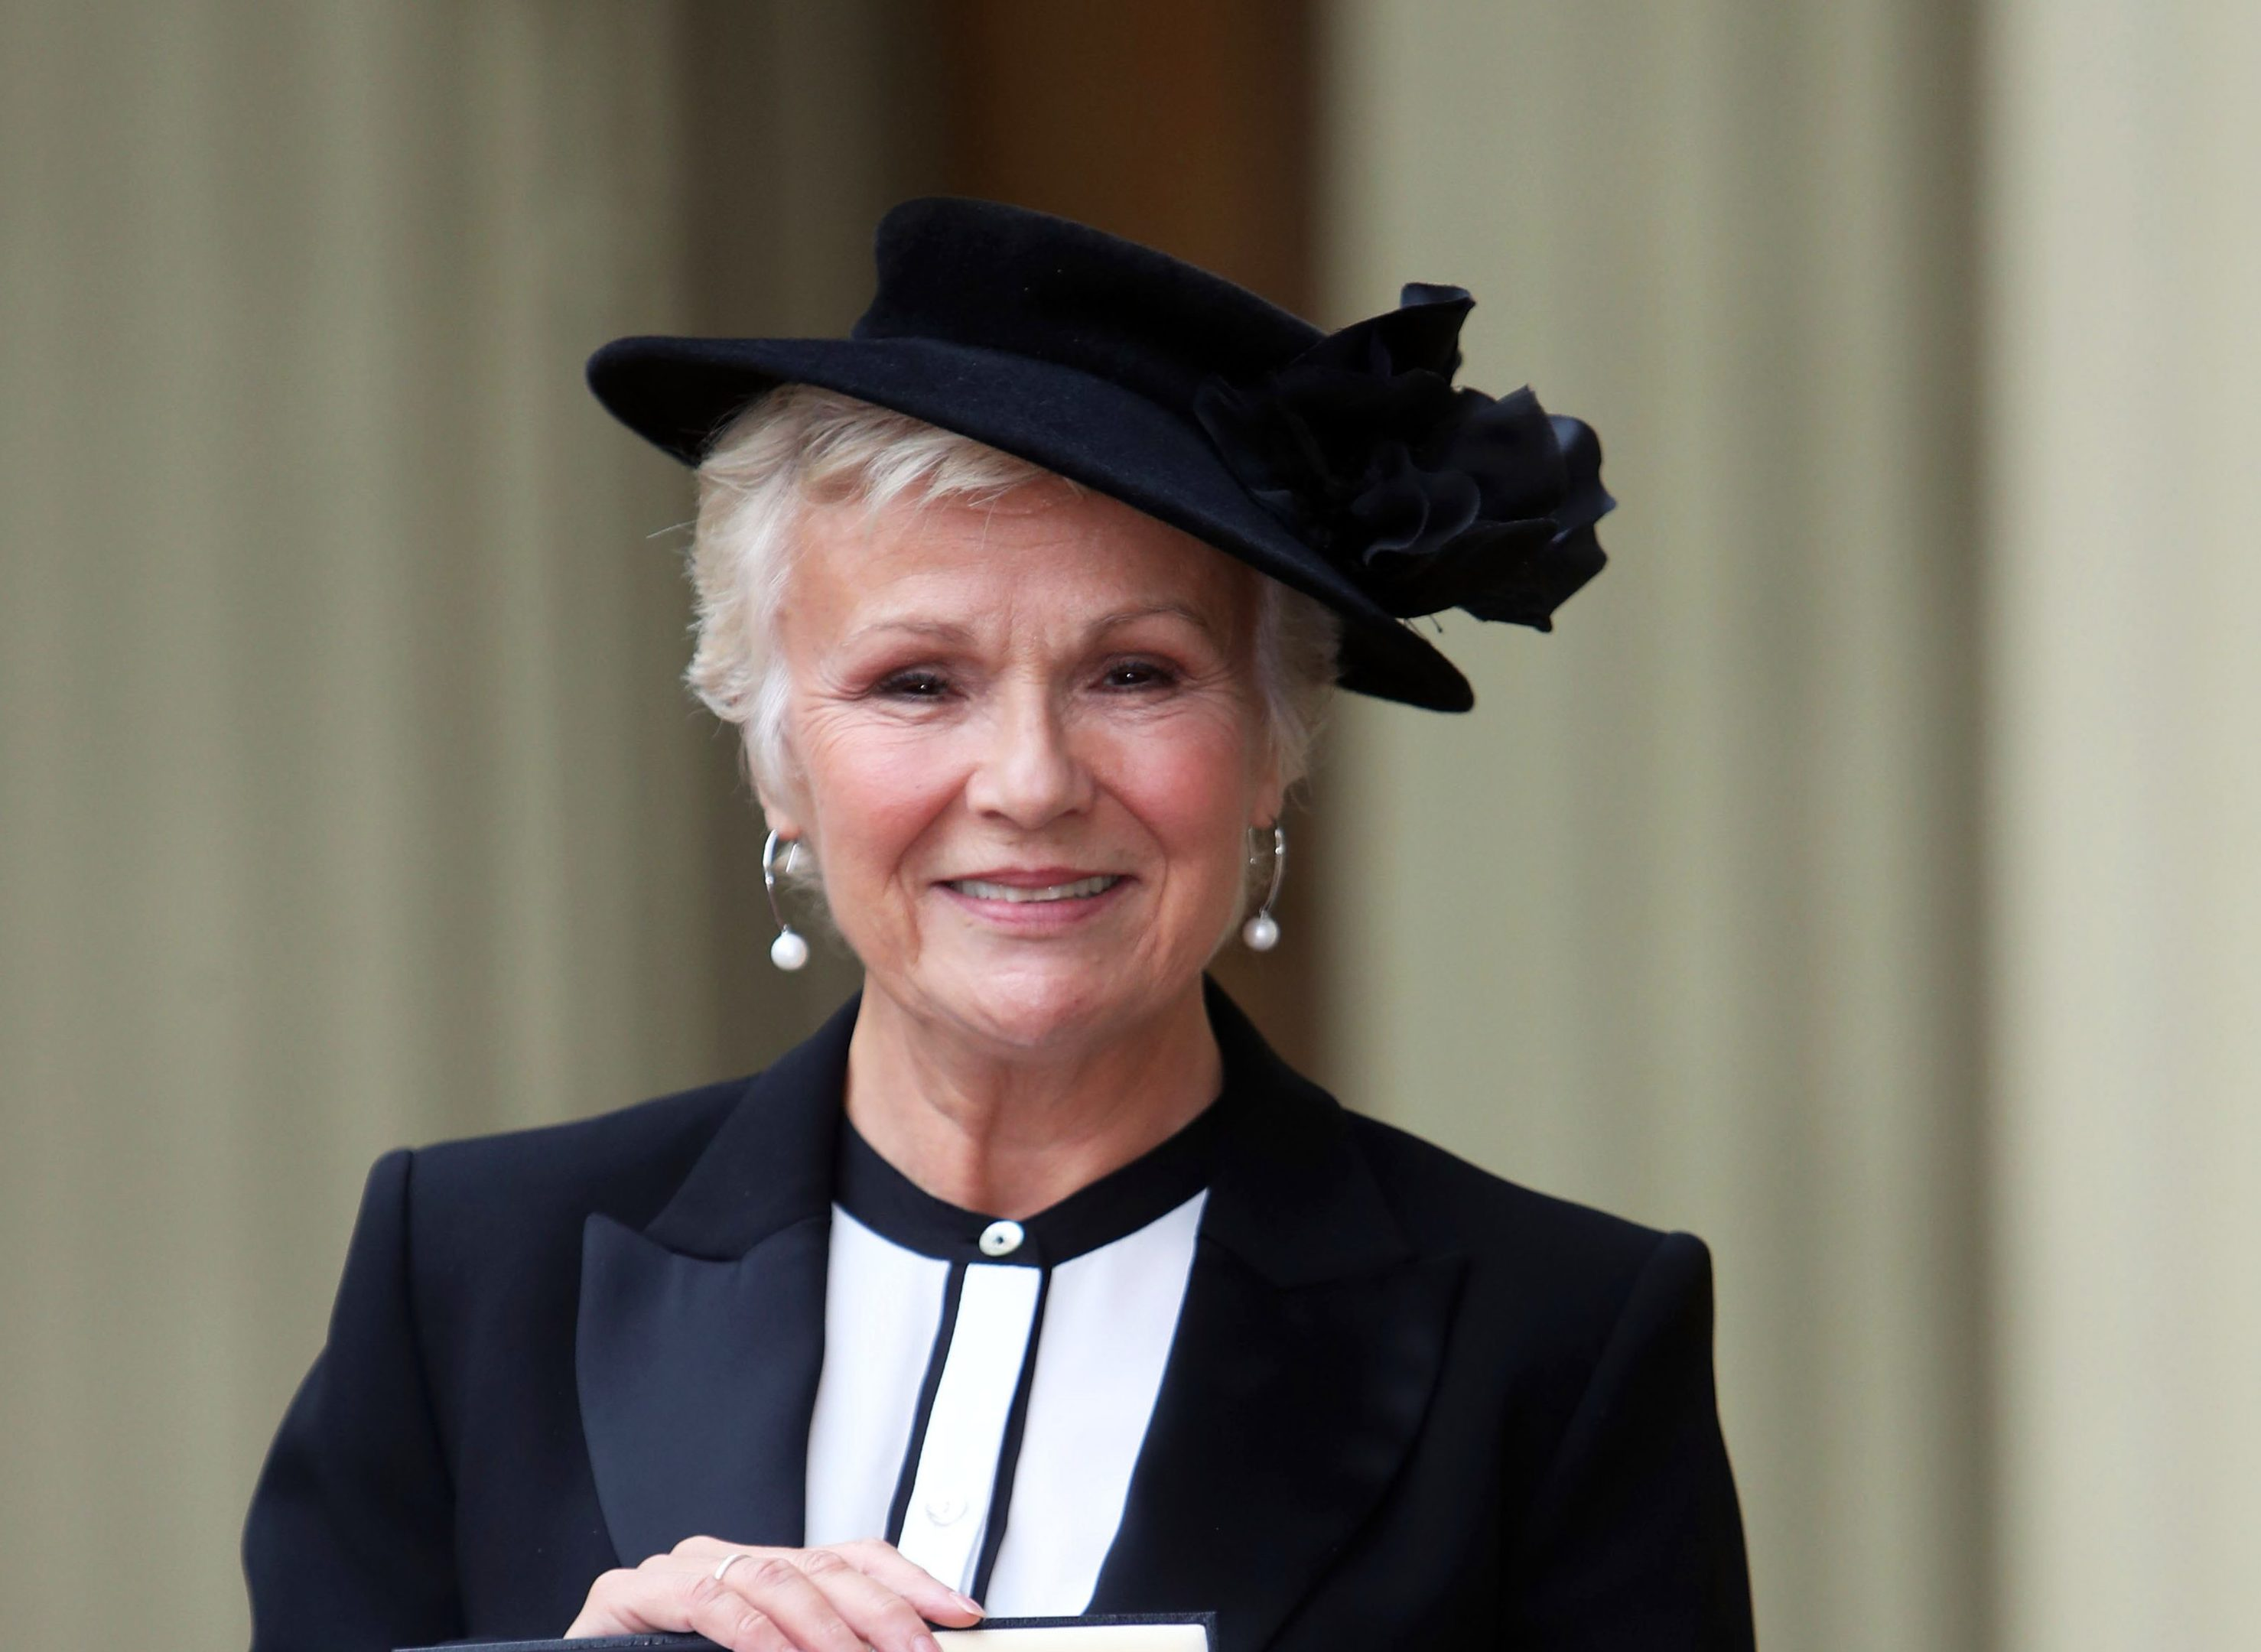 Dame Julie Walters poses after she was awarded a Damehood by Queen Elizabeth II (Steve Parsons - WPA Pool/Getty Images)